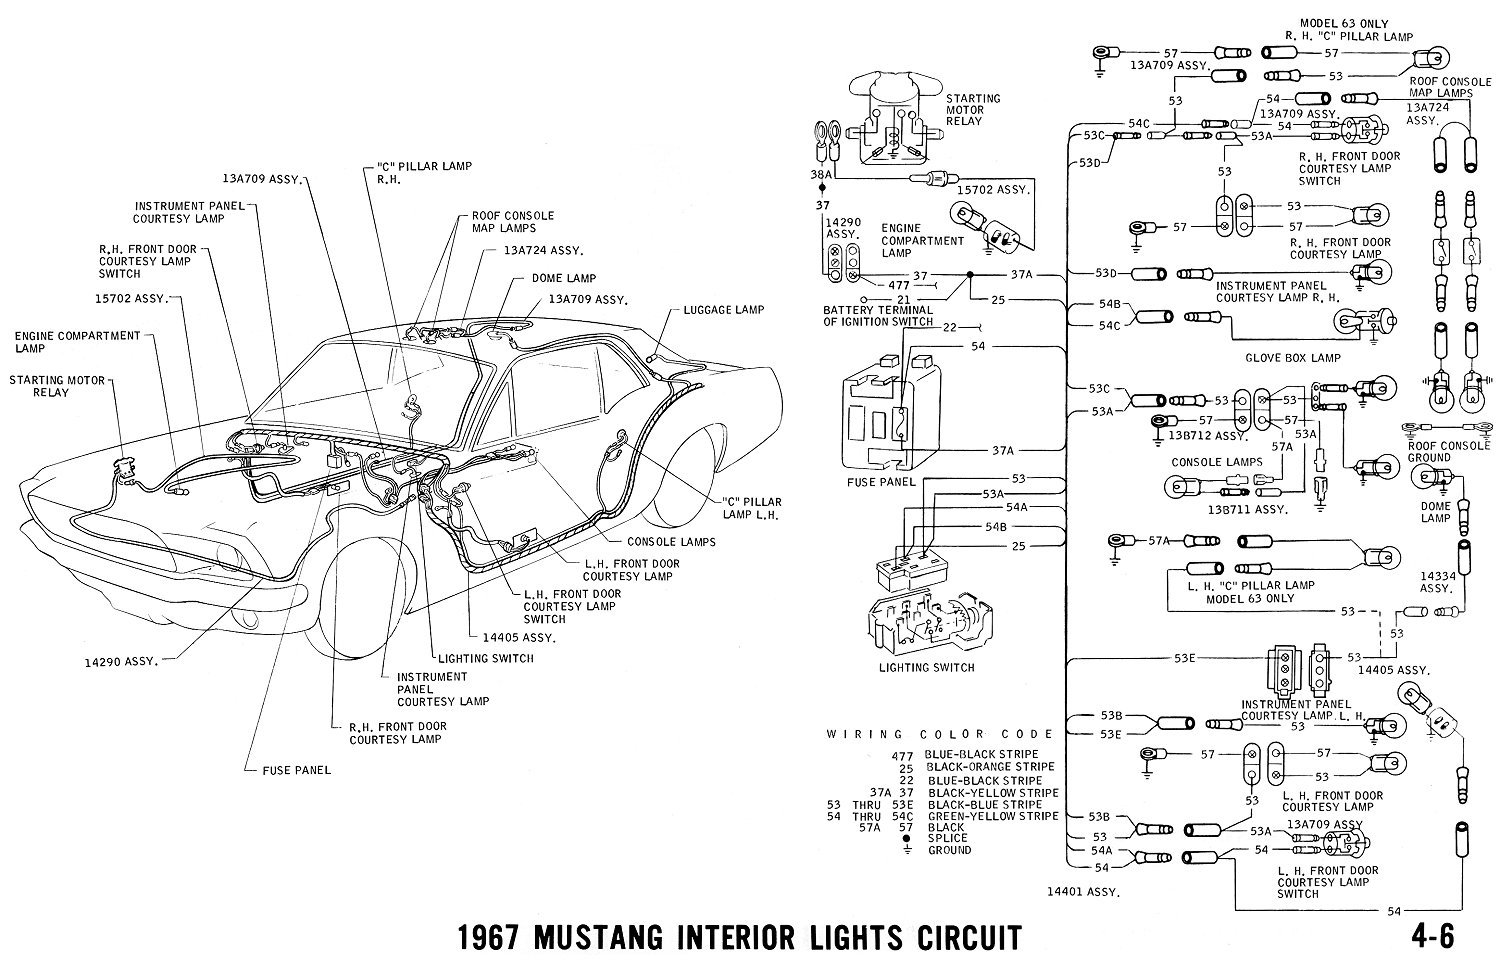 Mustang Wiring Diagram Likewise 1967 Ford Mustang Wiring Diagram